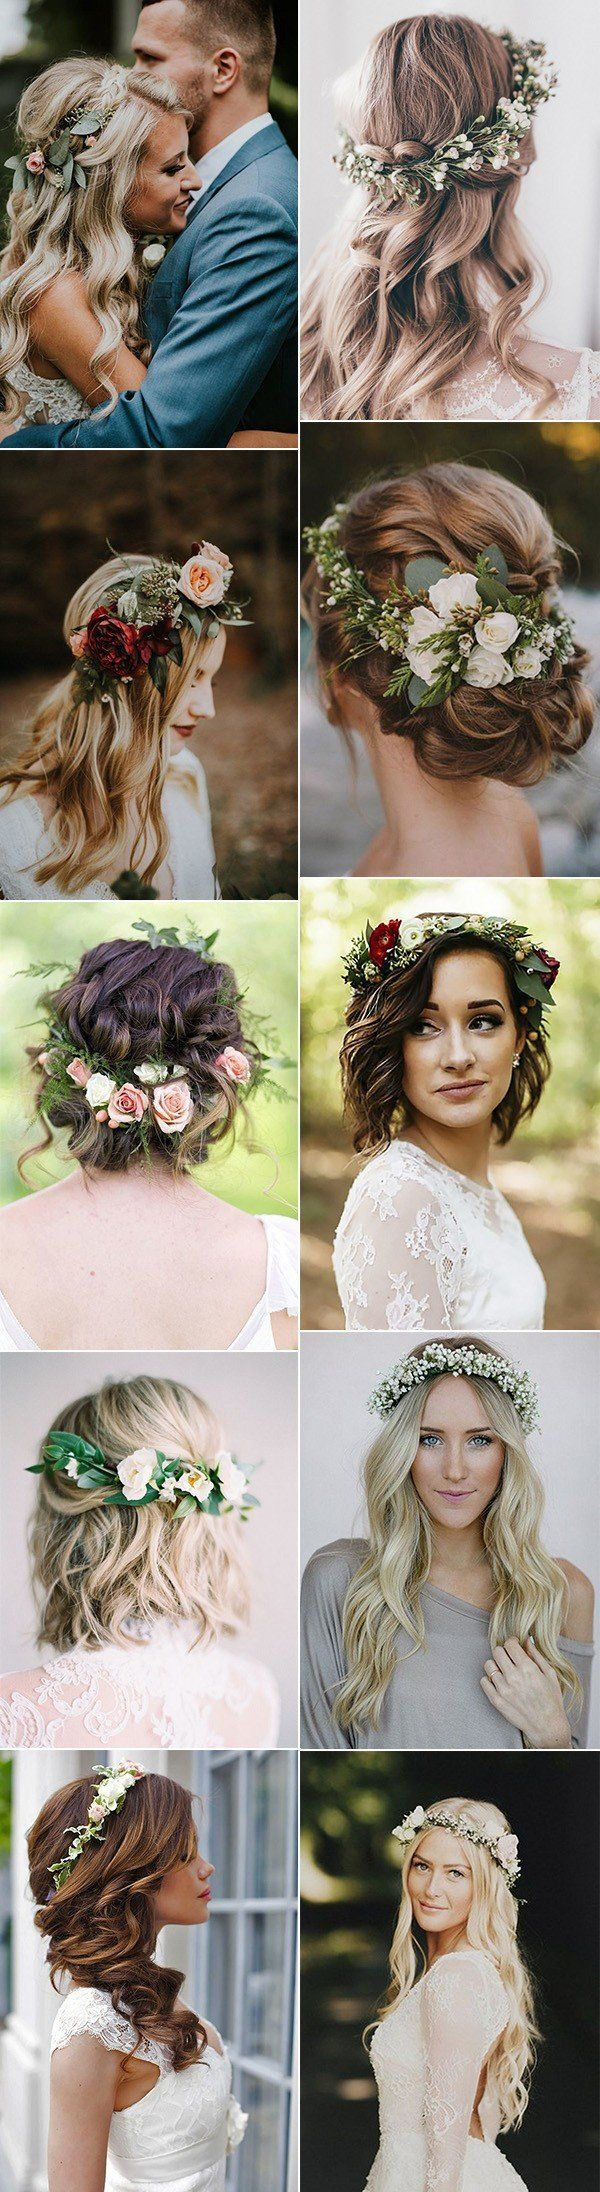 5 beautiful wedding hairstyles with flower crown